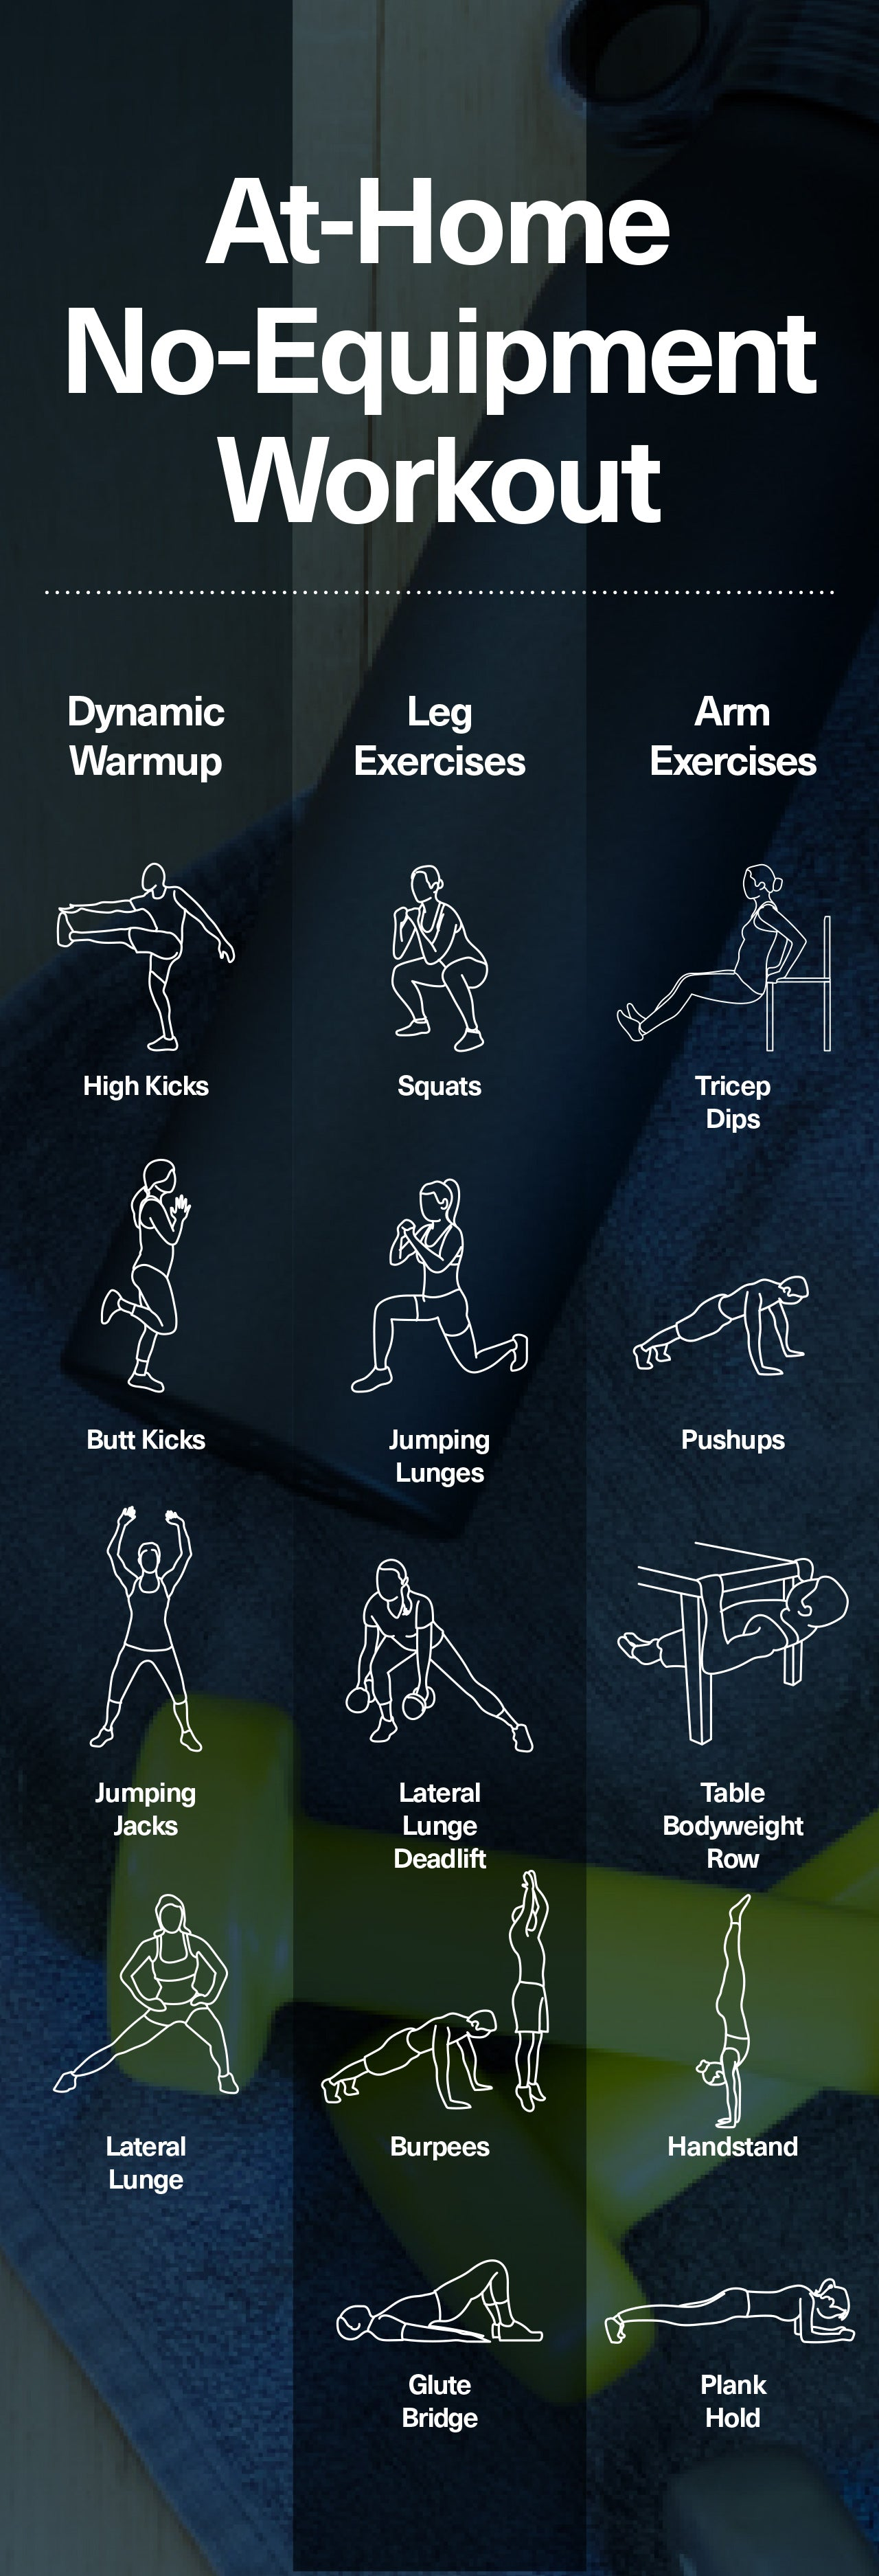 At-Home No-Equipment Workout